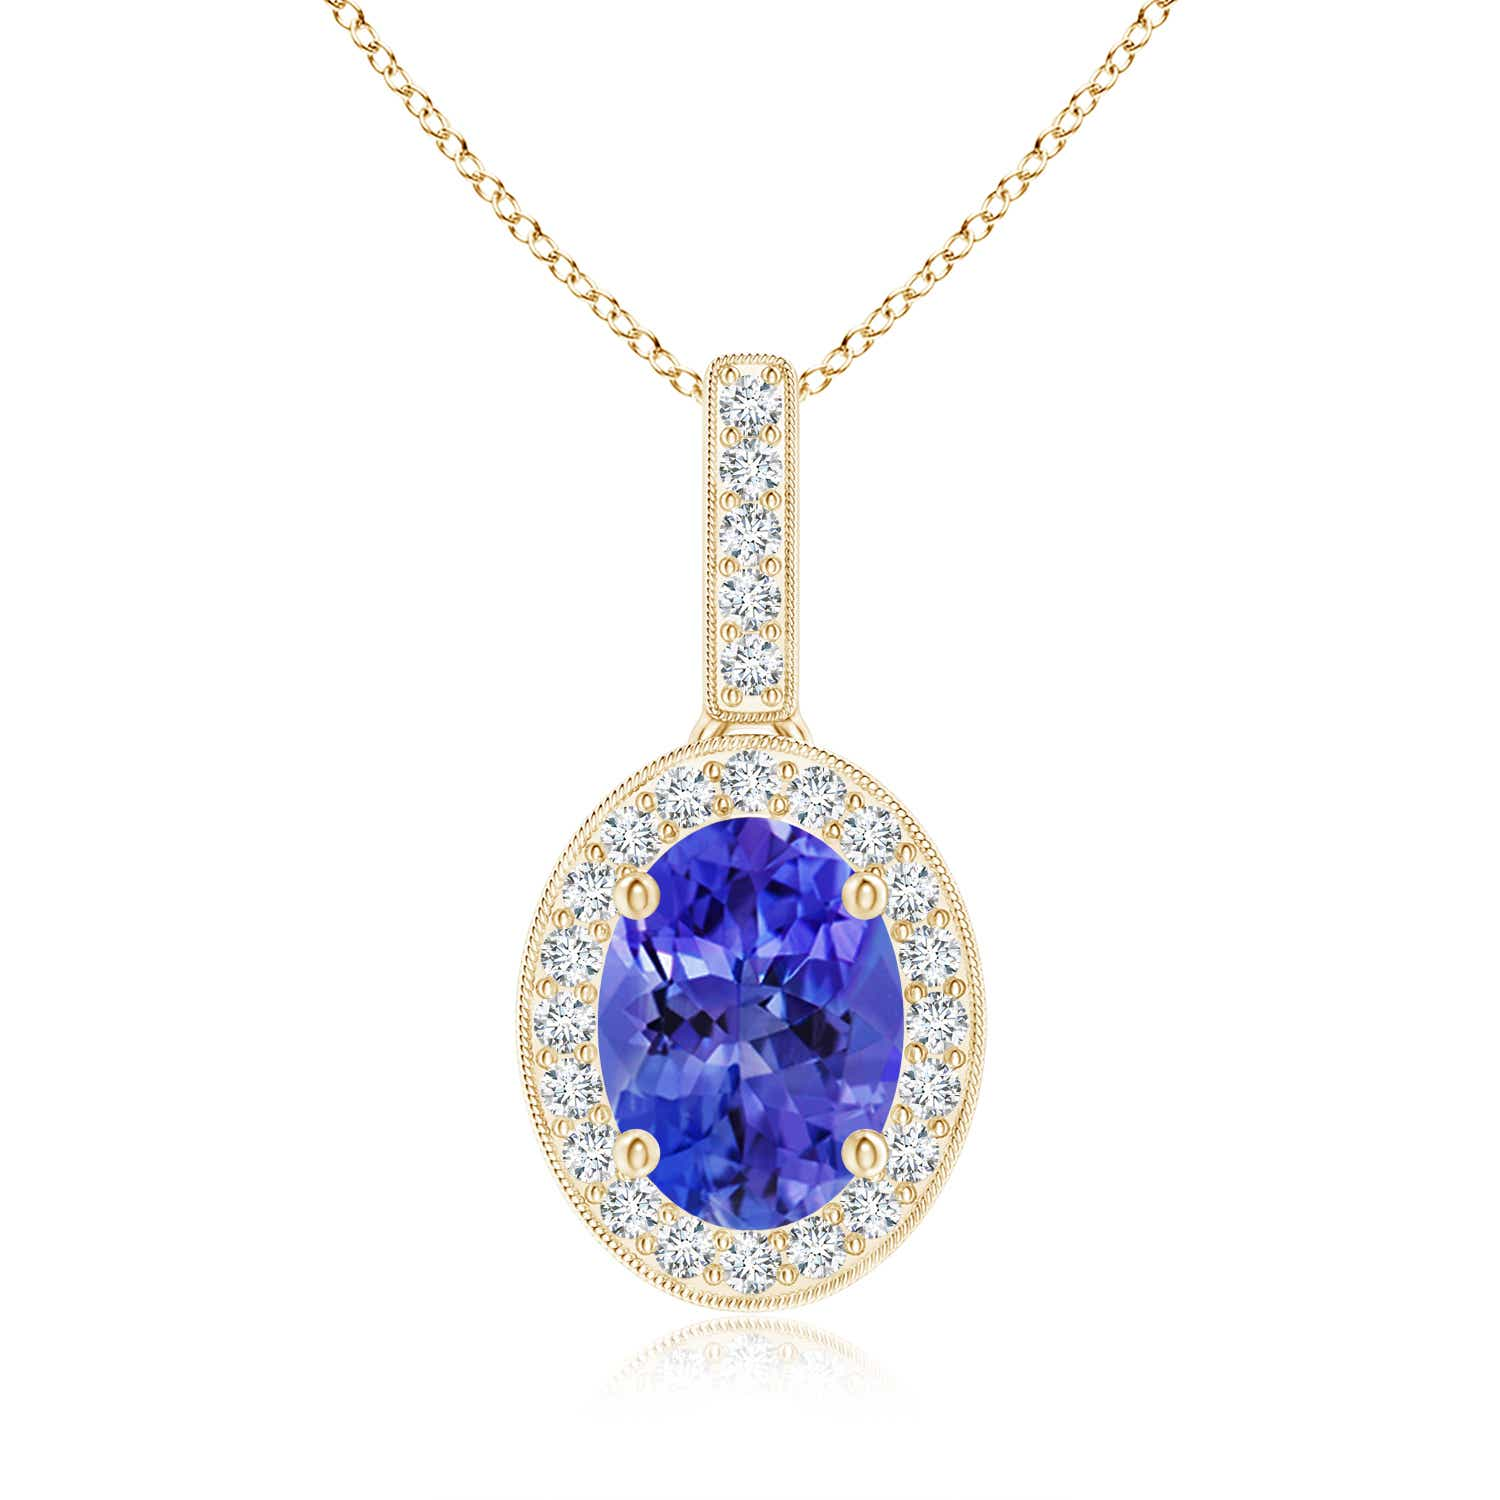 fit platinum necklaces ur pendants constrain pendant hei u a soleste m jewelry round tanzanite in fmt tiffany id wid ed with